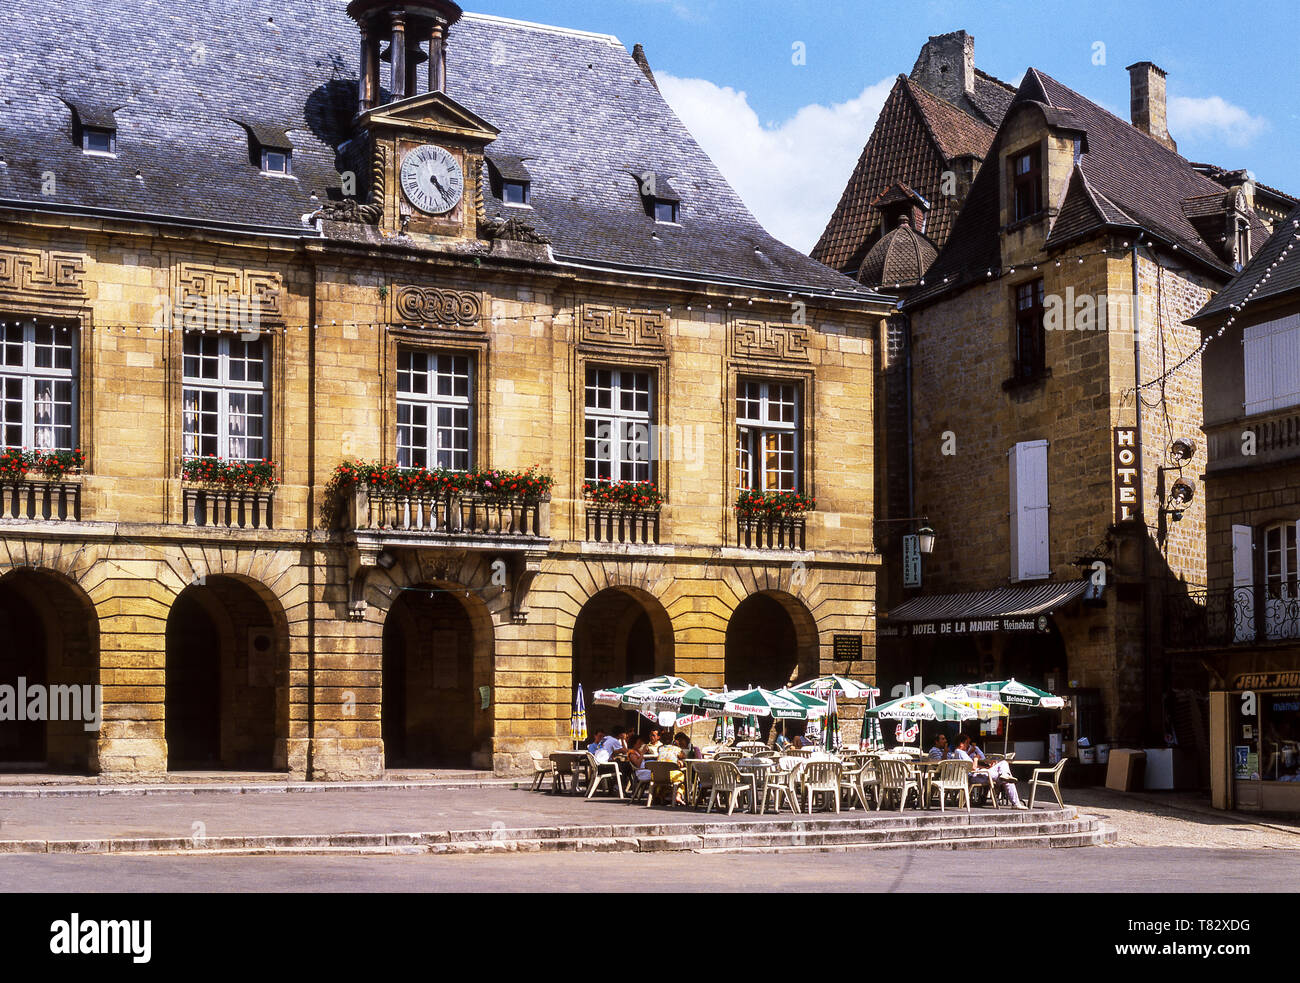 Sarlat-le-Caneda. The Town Hall of this medieval town in the Dordogne department.France. - Stock Image